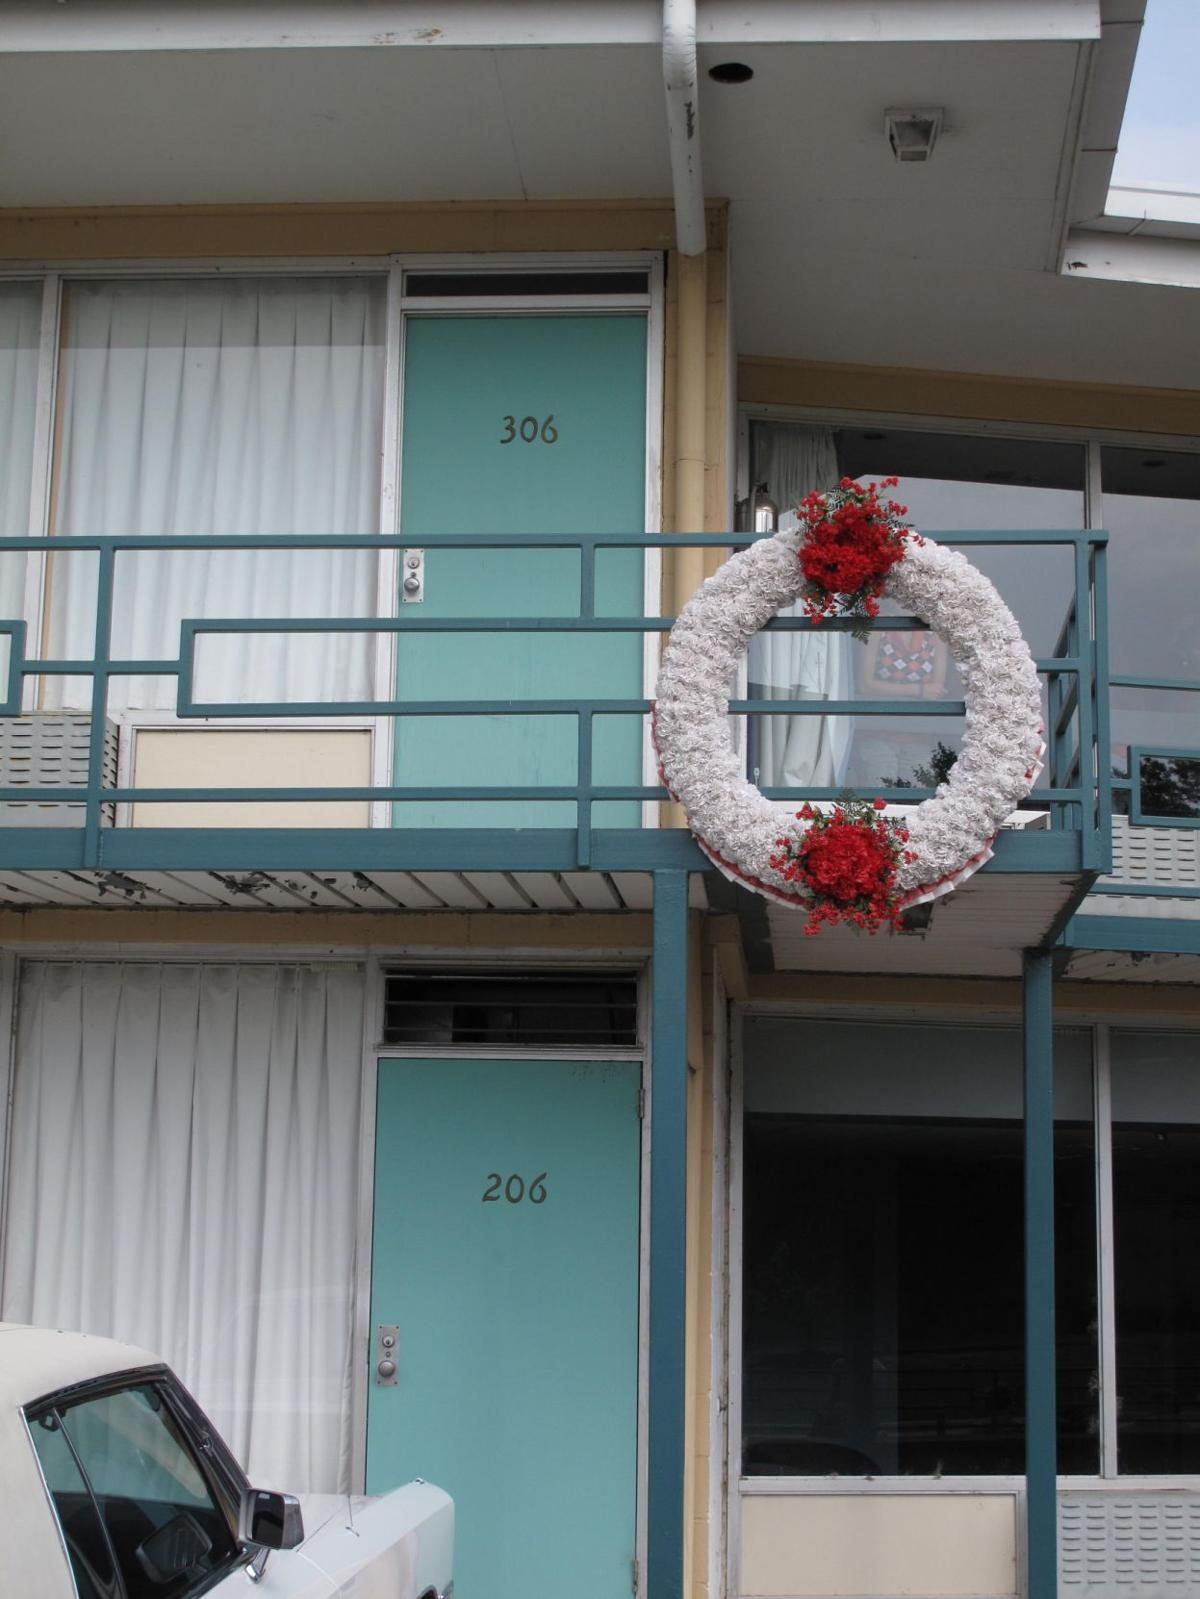 Balcony of Lorraine motel where Dr. King was assassinated